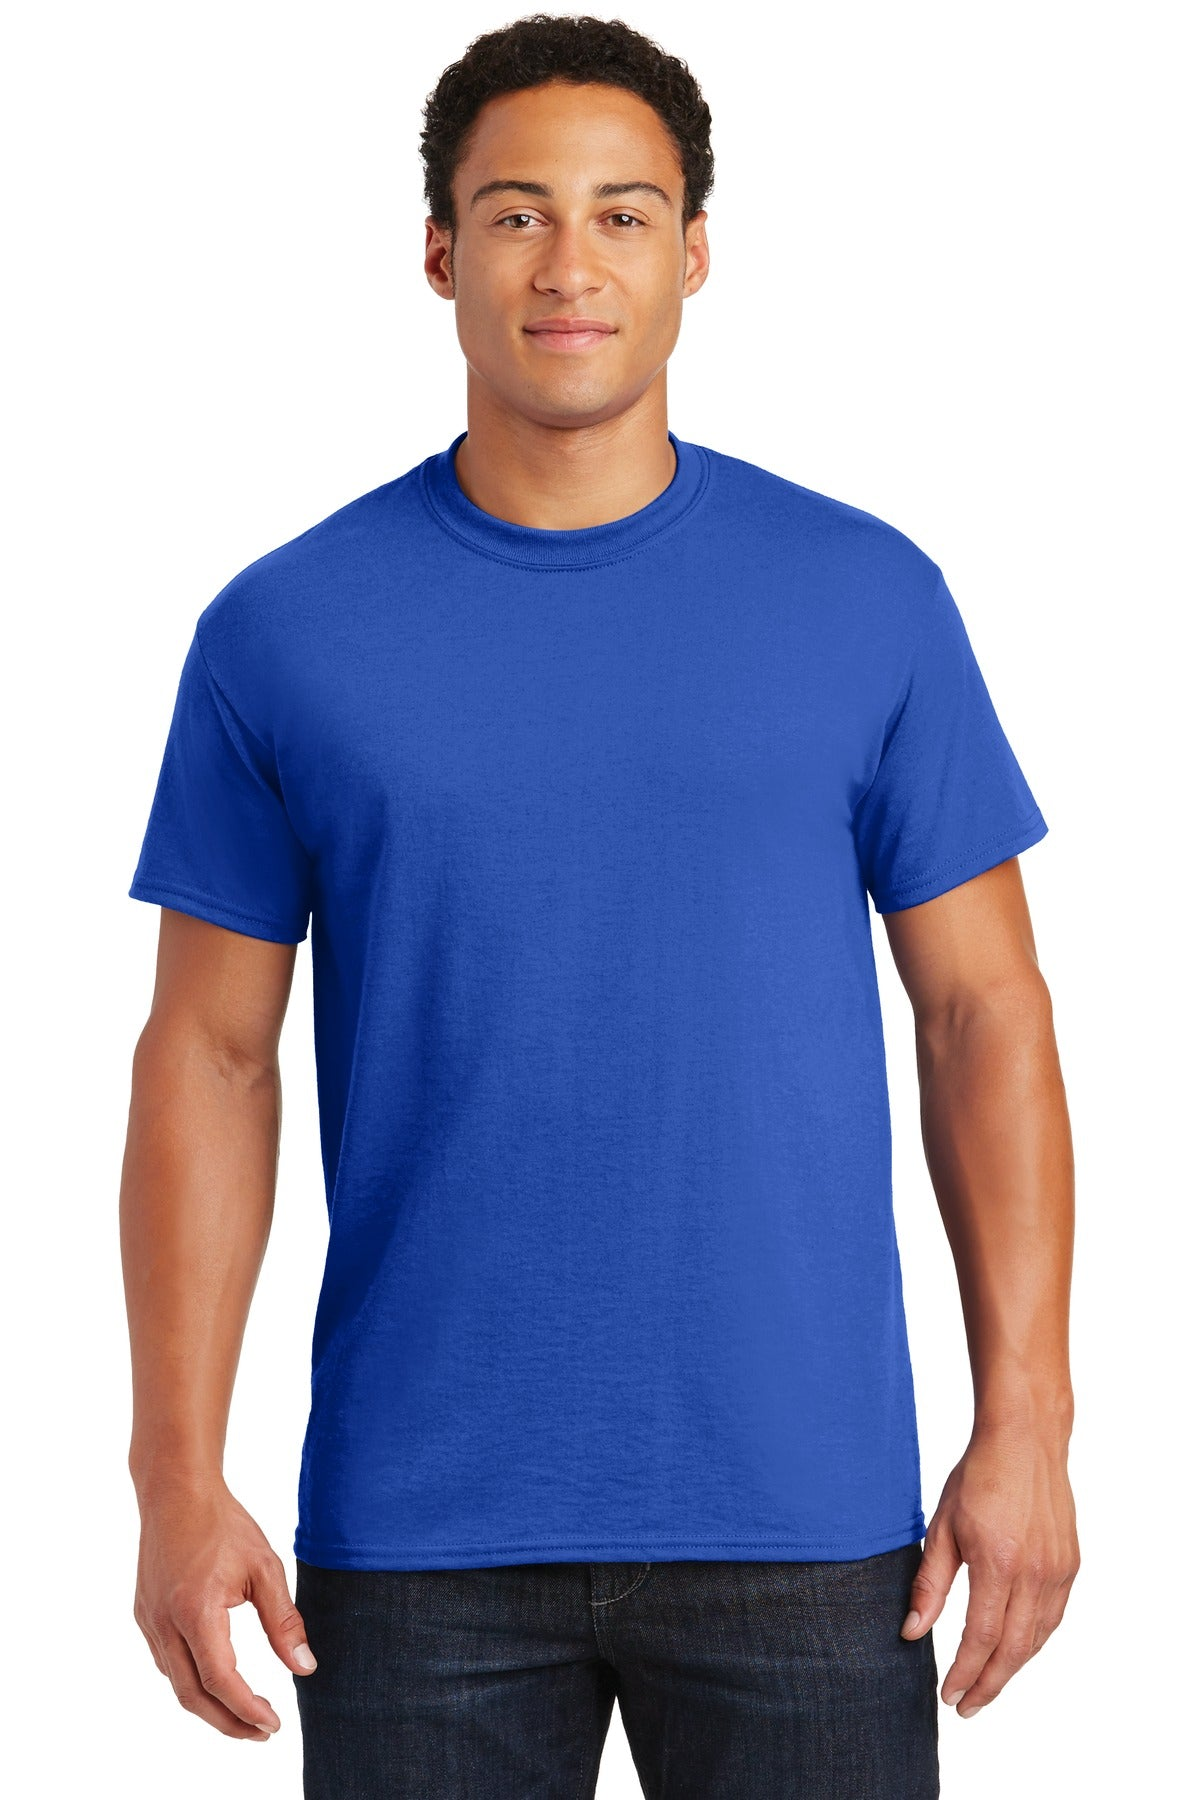 Royal Gildan DryBlend 50 Cotton/50 Poly T-Shirt.